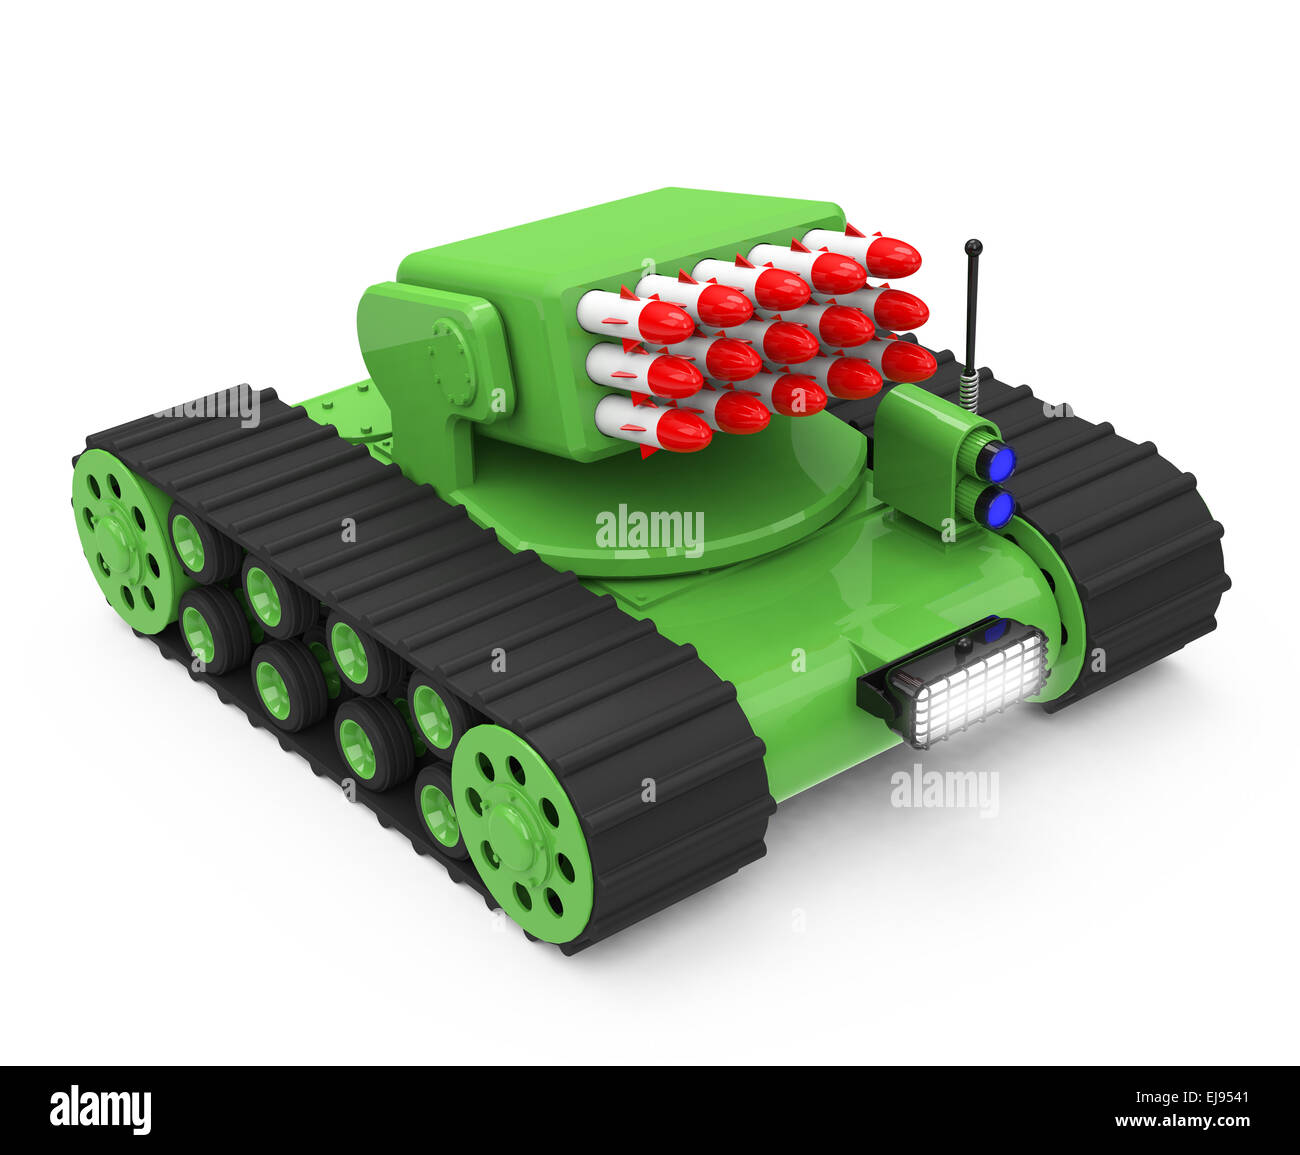 tank with rockets - Stock Image